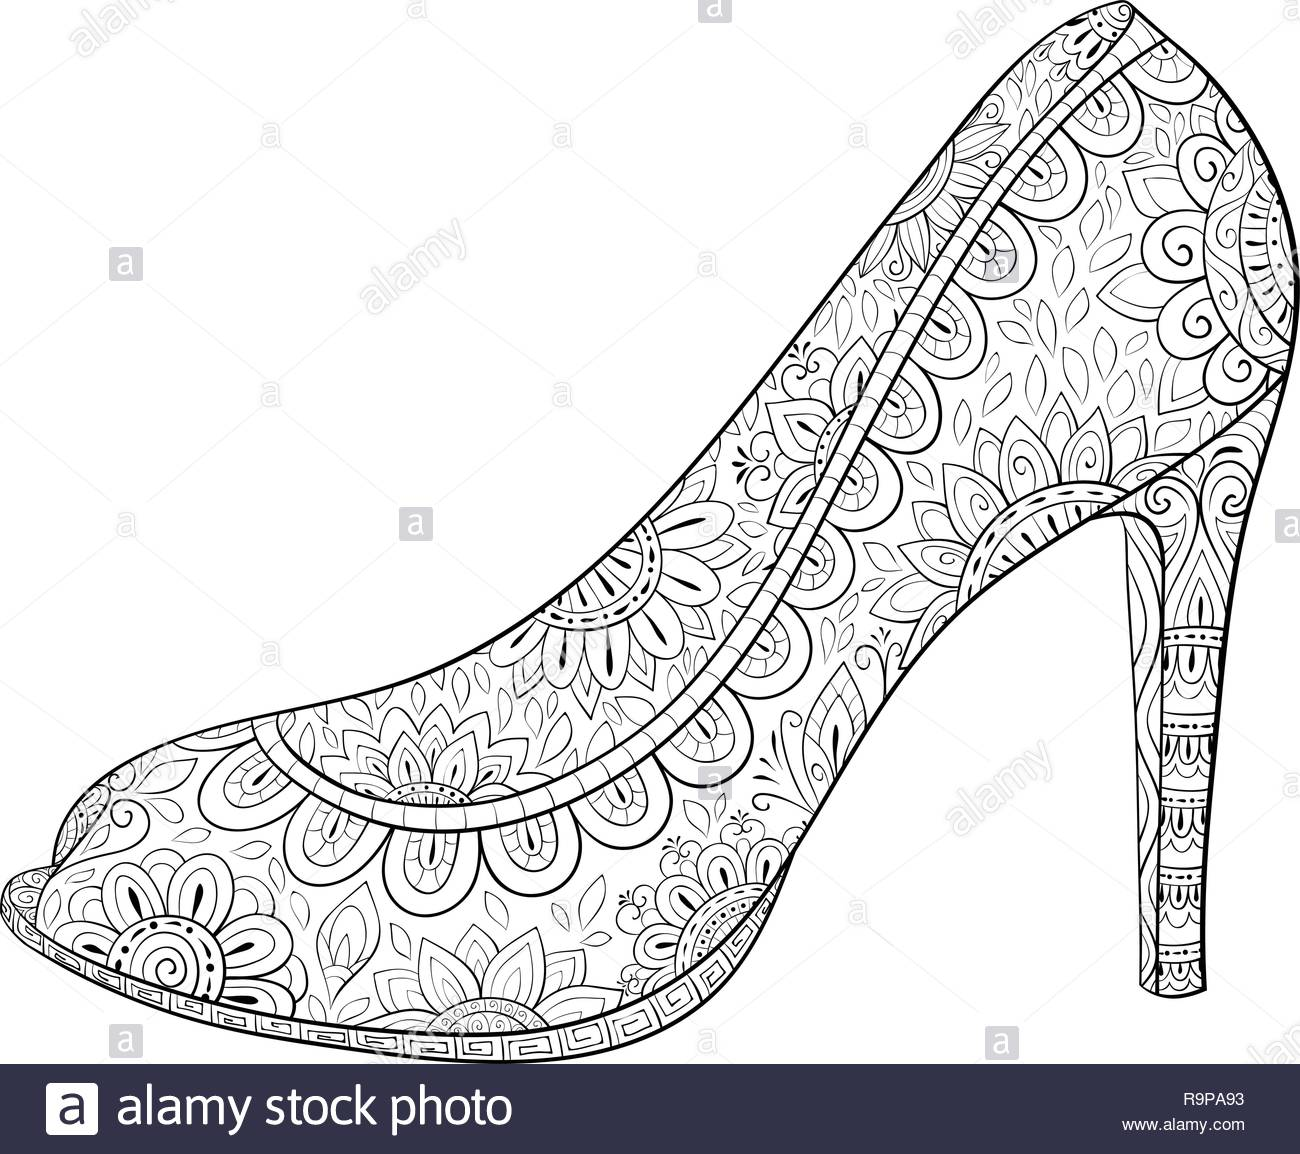 A Cute Shoe With High Heel Full Of Zen Ornaments Image For